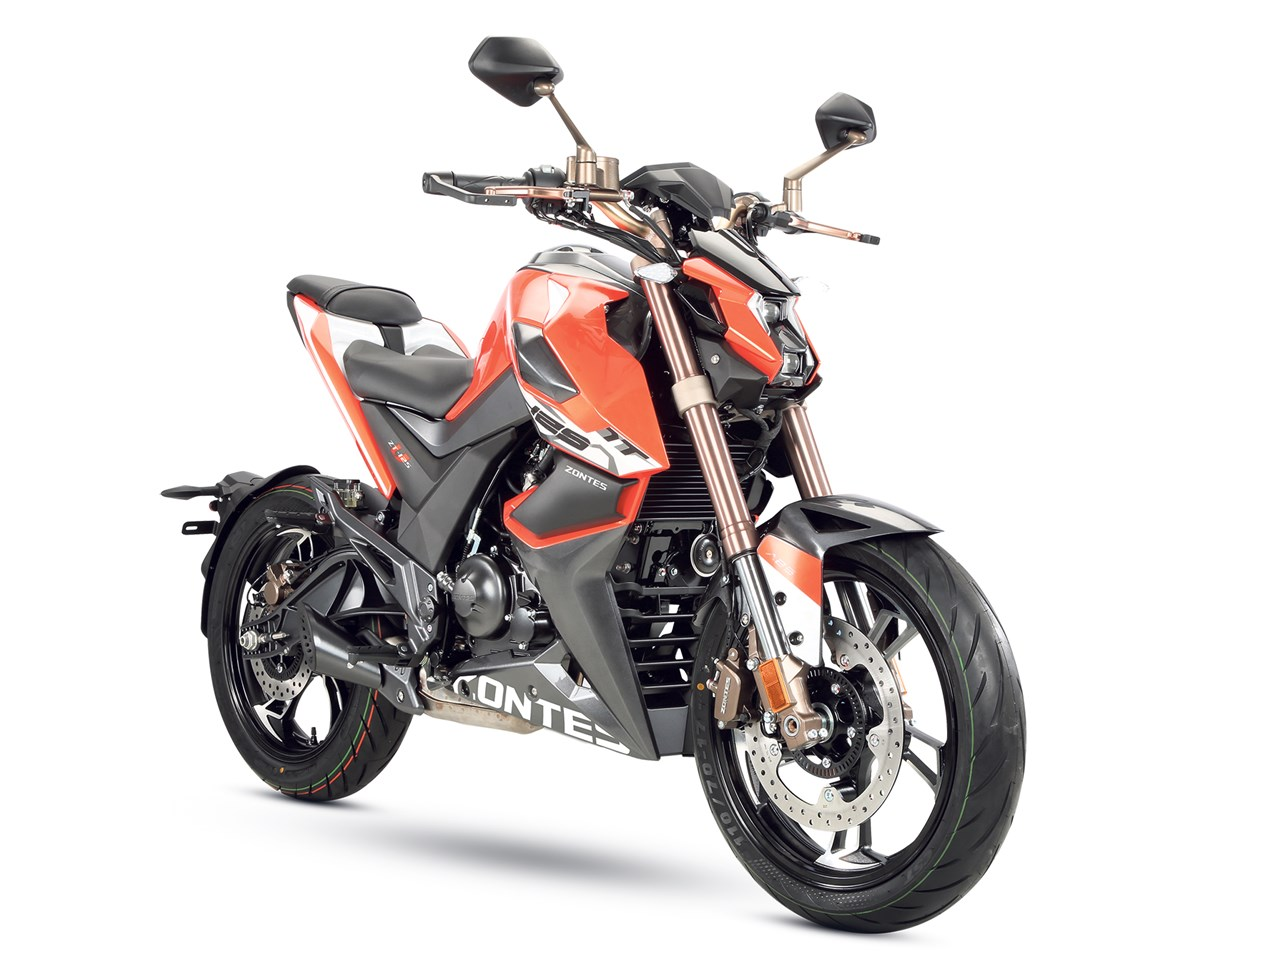 2021 Zontes ZT125 U Brand New 2Yr Warranty, Leaner Legal For Sale | Car And Classic